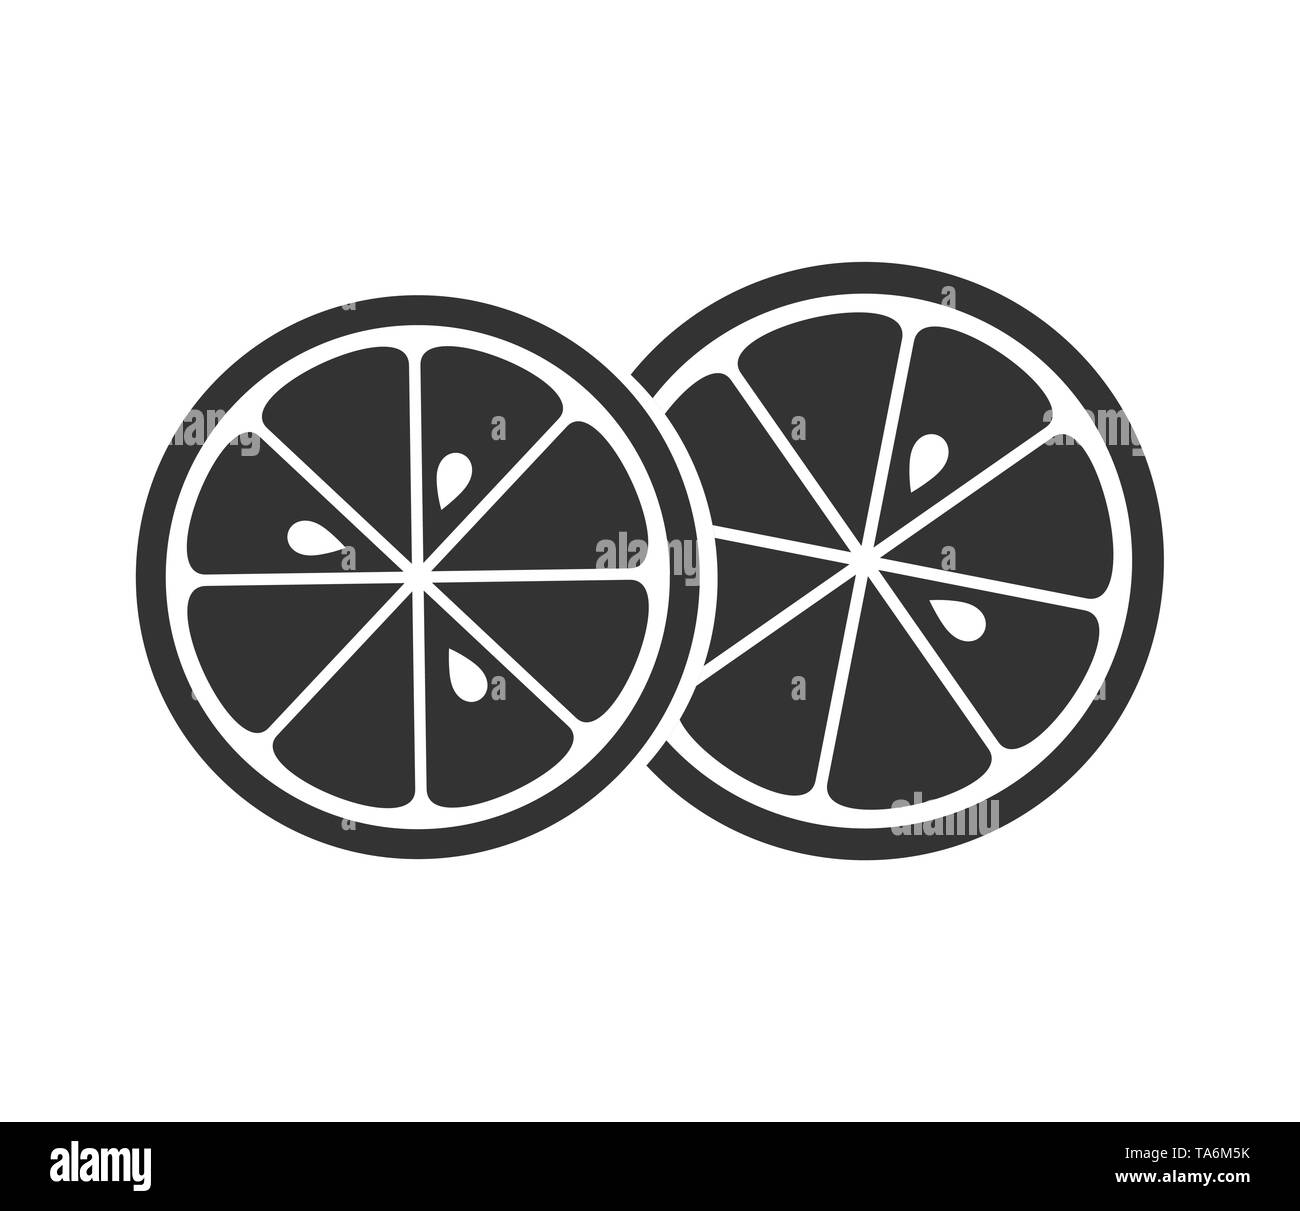 Two citrus slices icon. Vector illustration - Stock Image